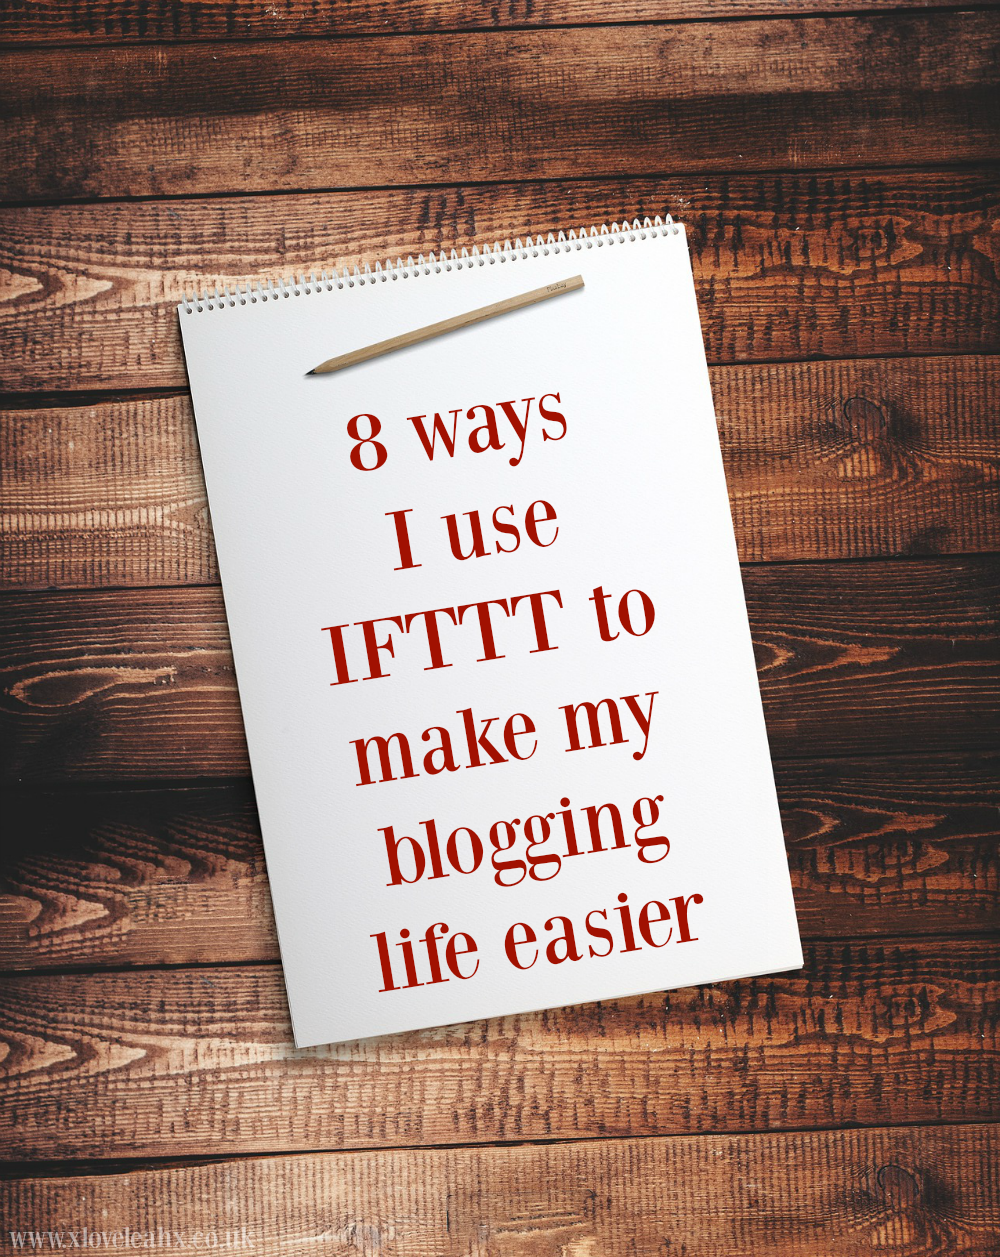 8-ways-I-use-IFTTT-to-make-my-blogging-life-easier If This Then That blogging productivity tools